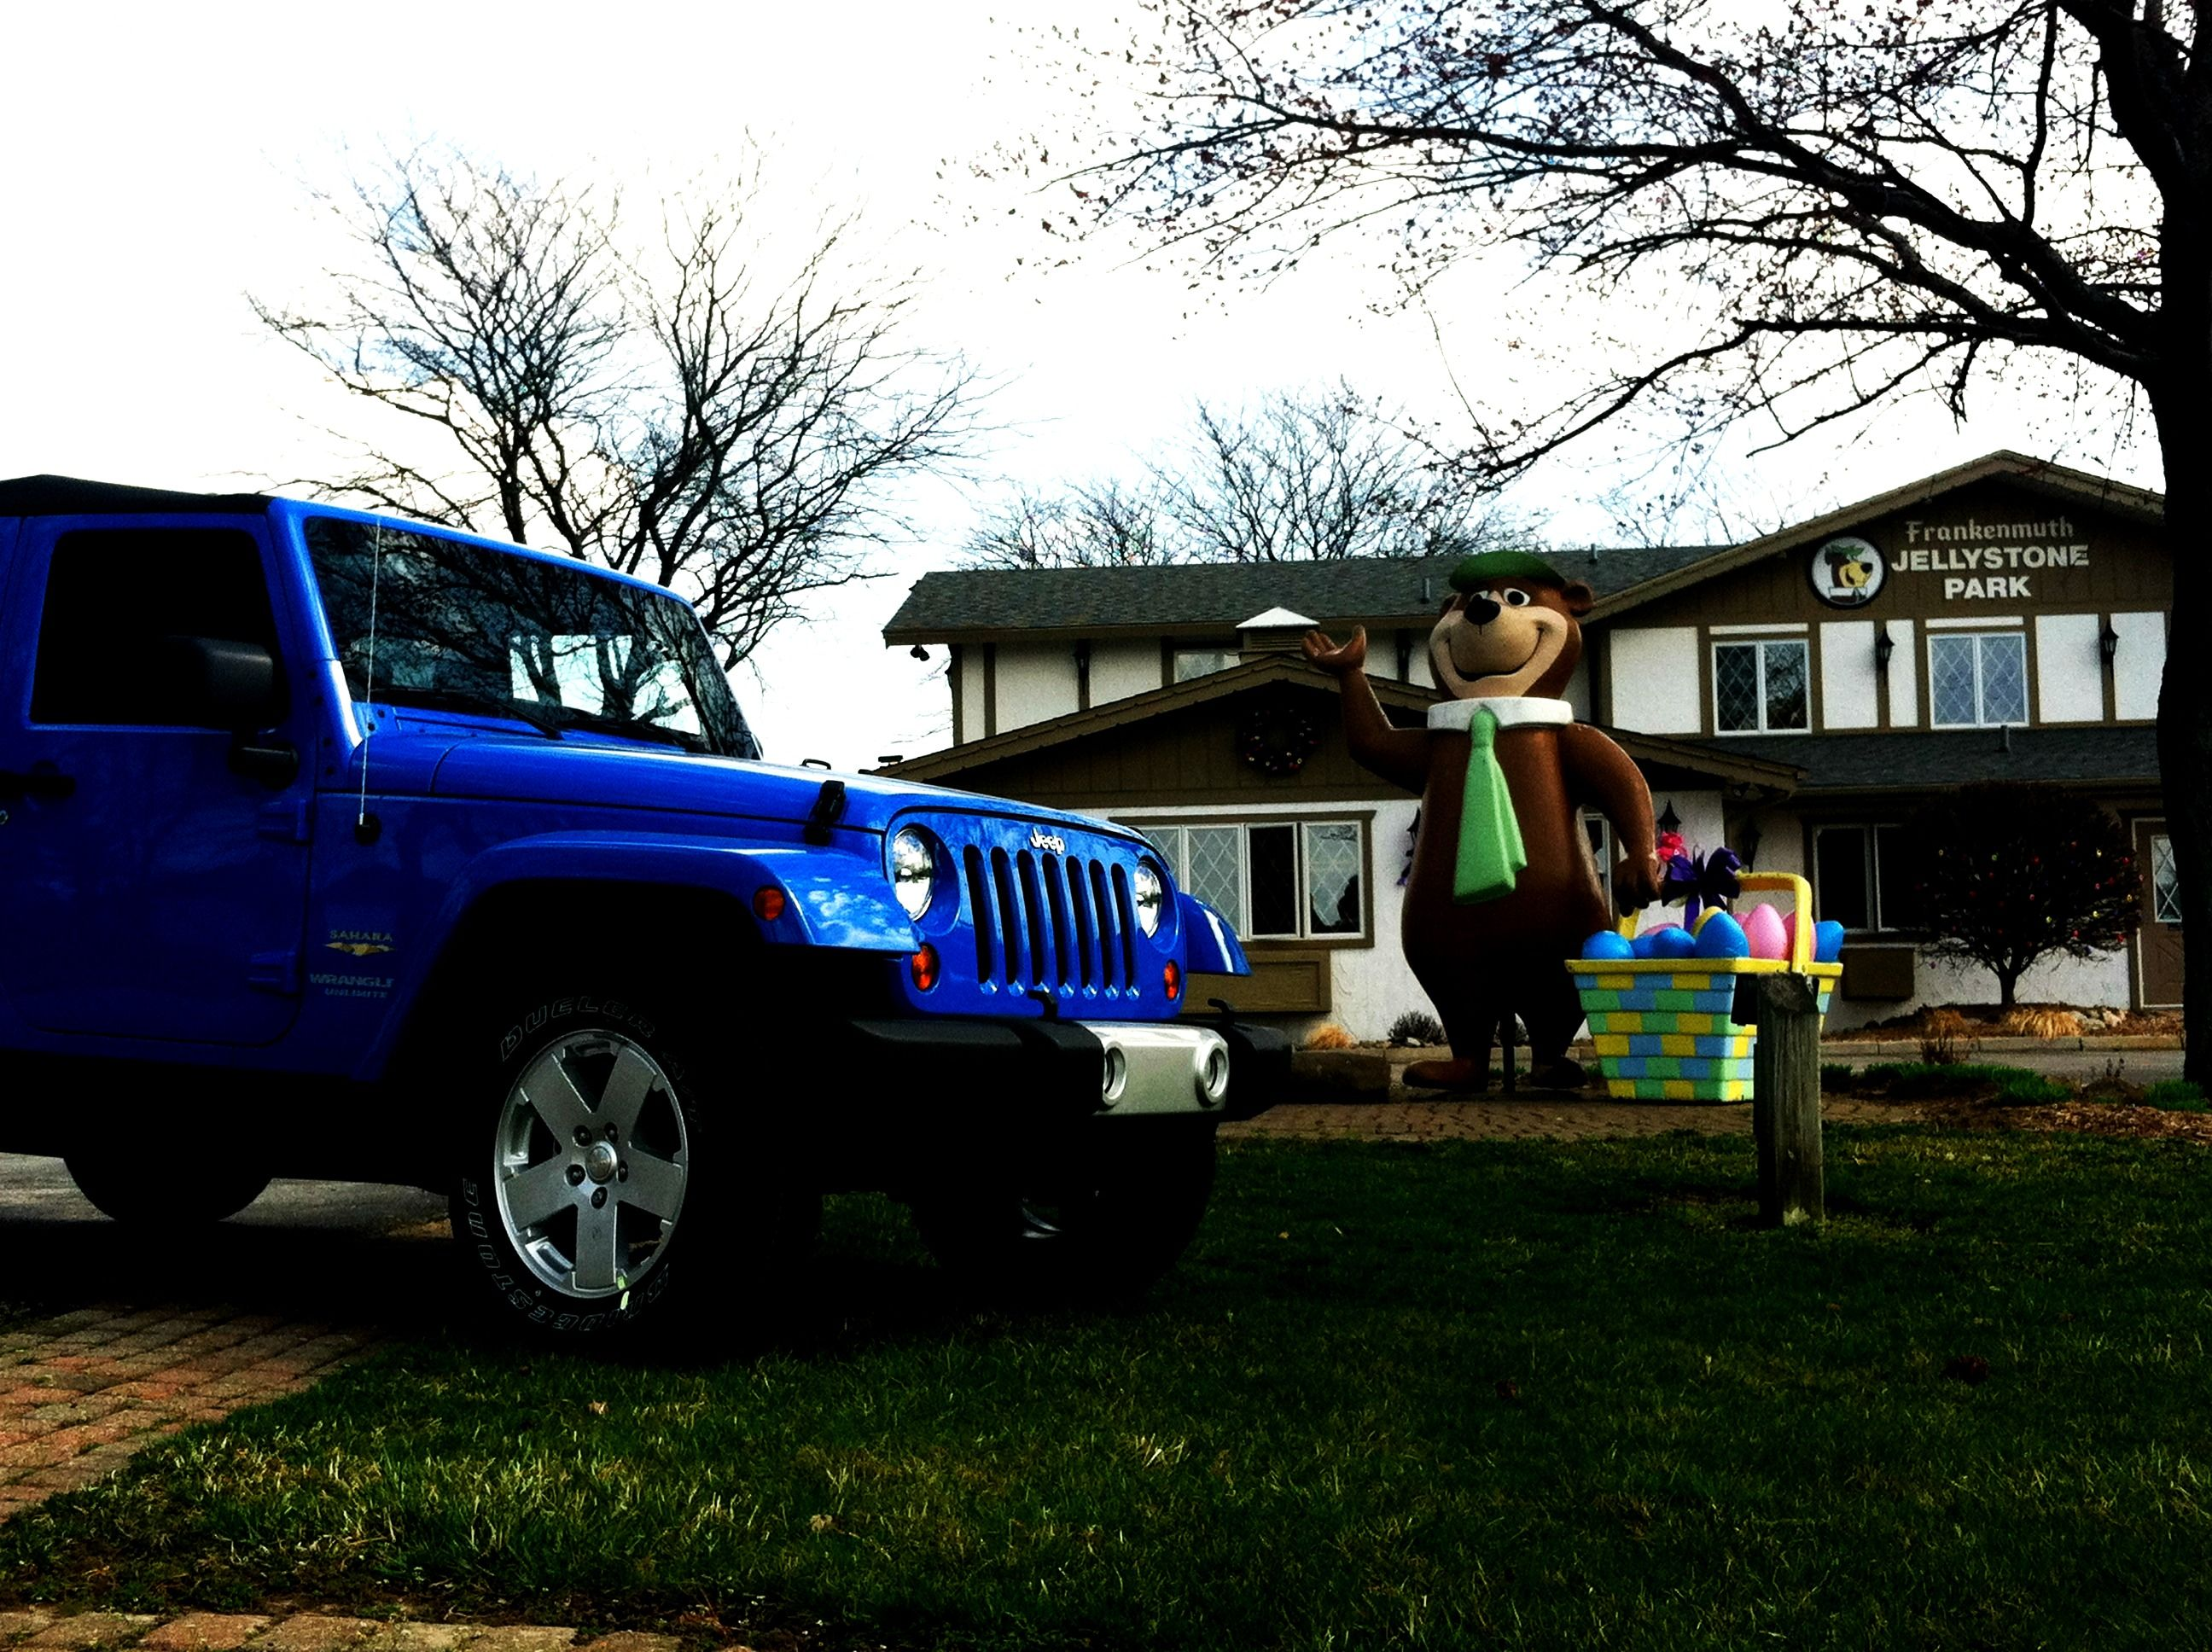 Schaefer & Bierlein s Jeep Wrangler was perfect for a nice day out